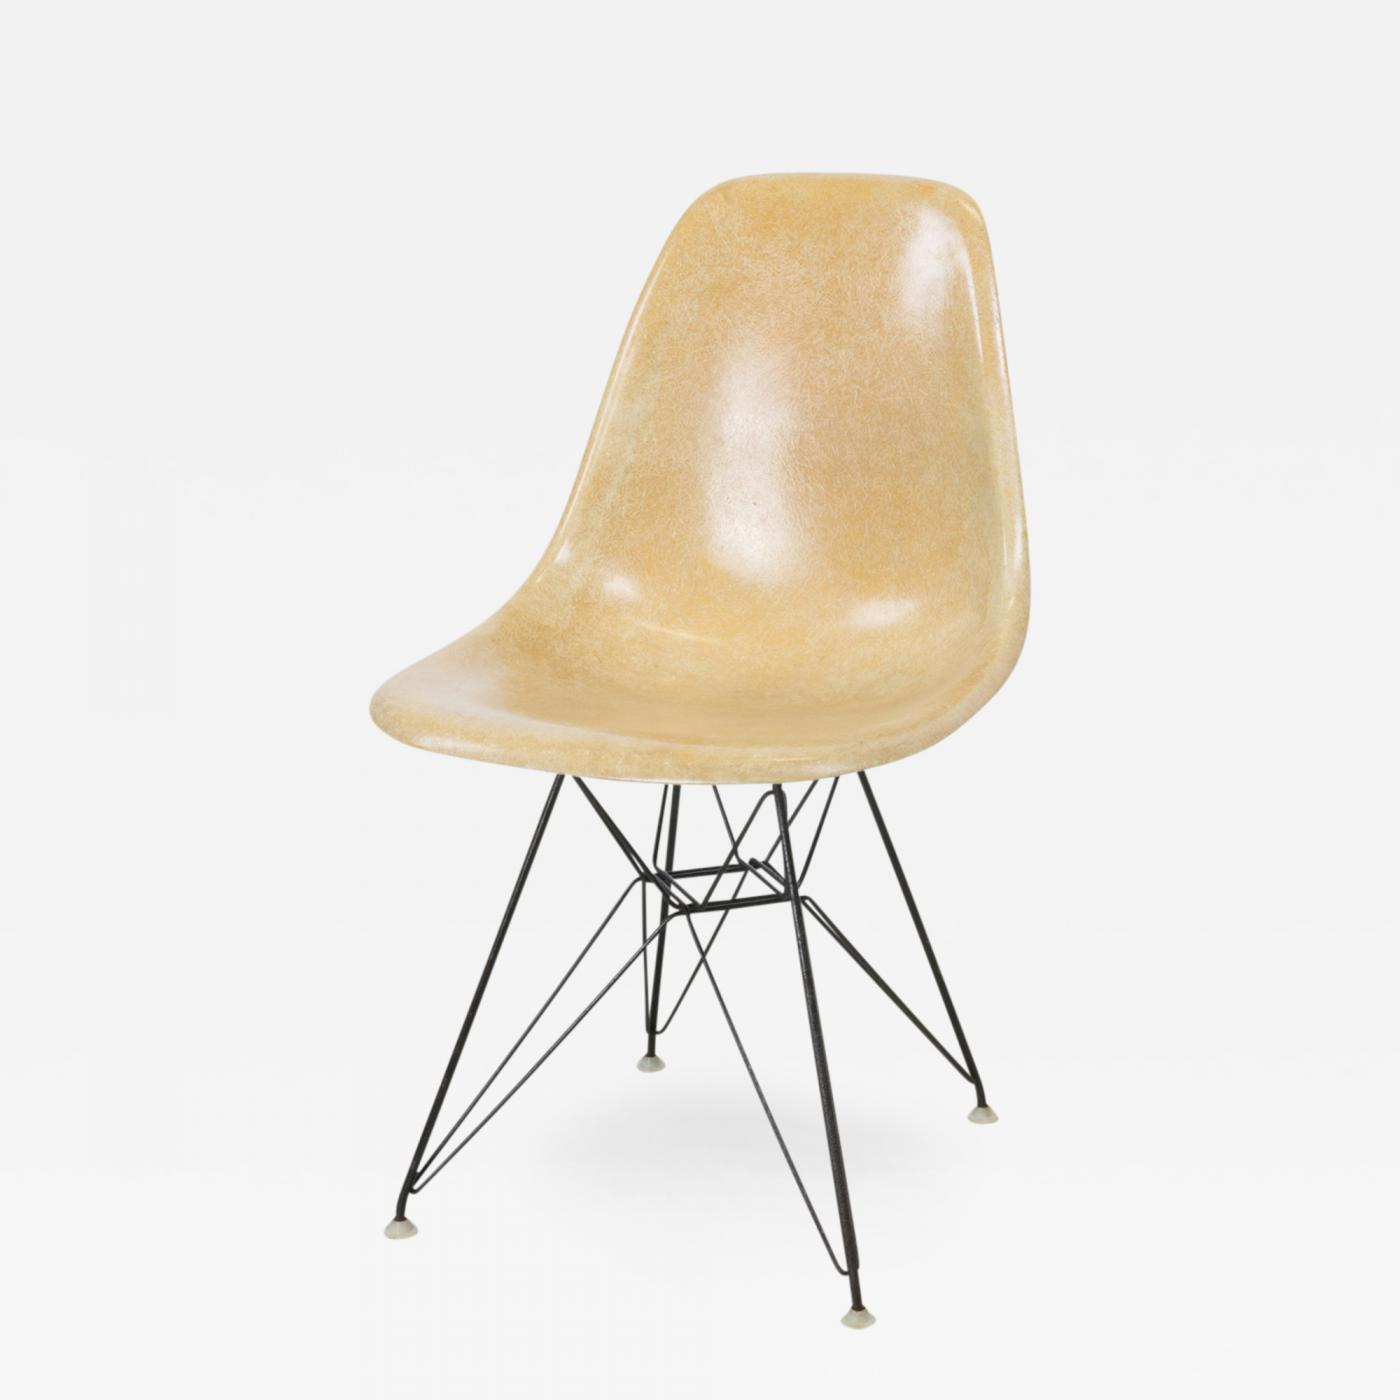 Eames Eiffel Charles And Ray Eames Dsr Eiffel Base Side Chair By Charles And Ray Eames For Herman Miller